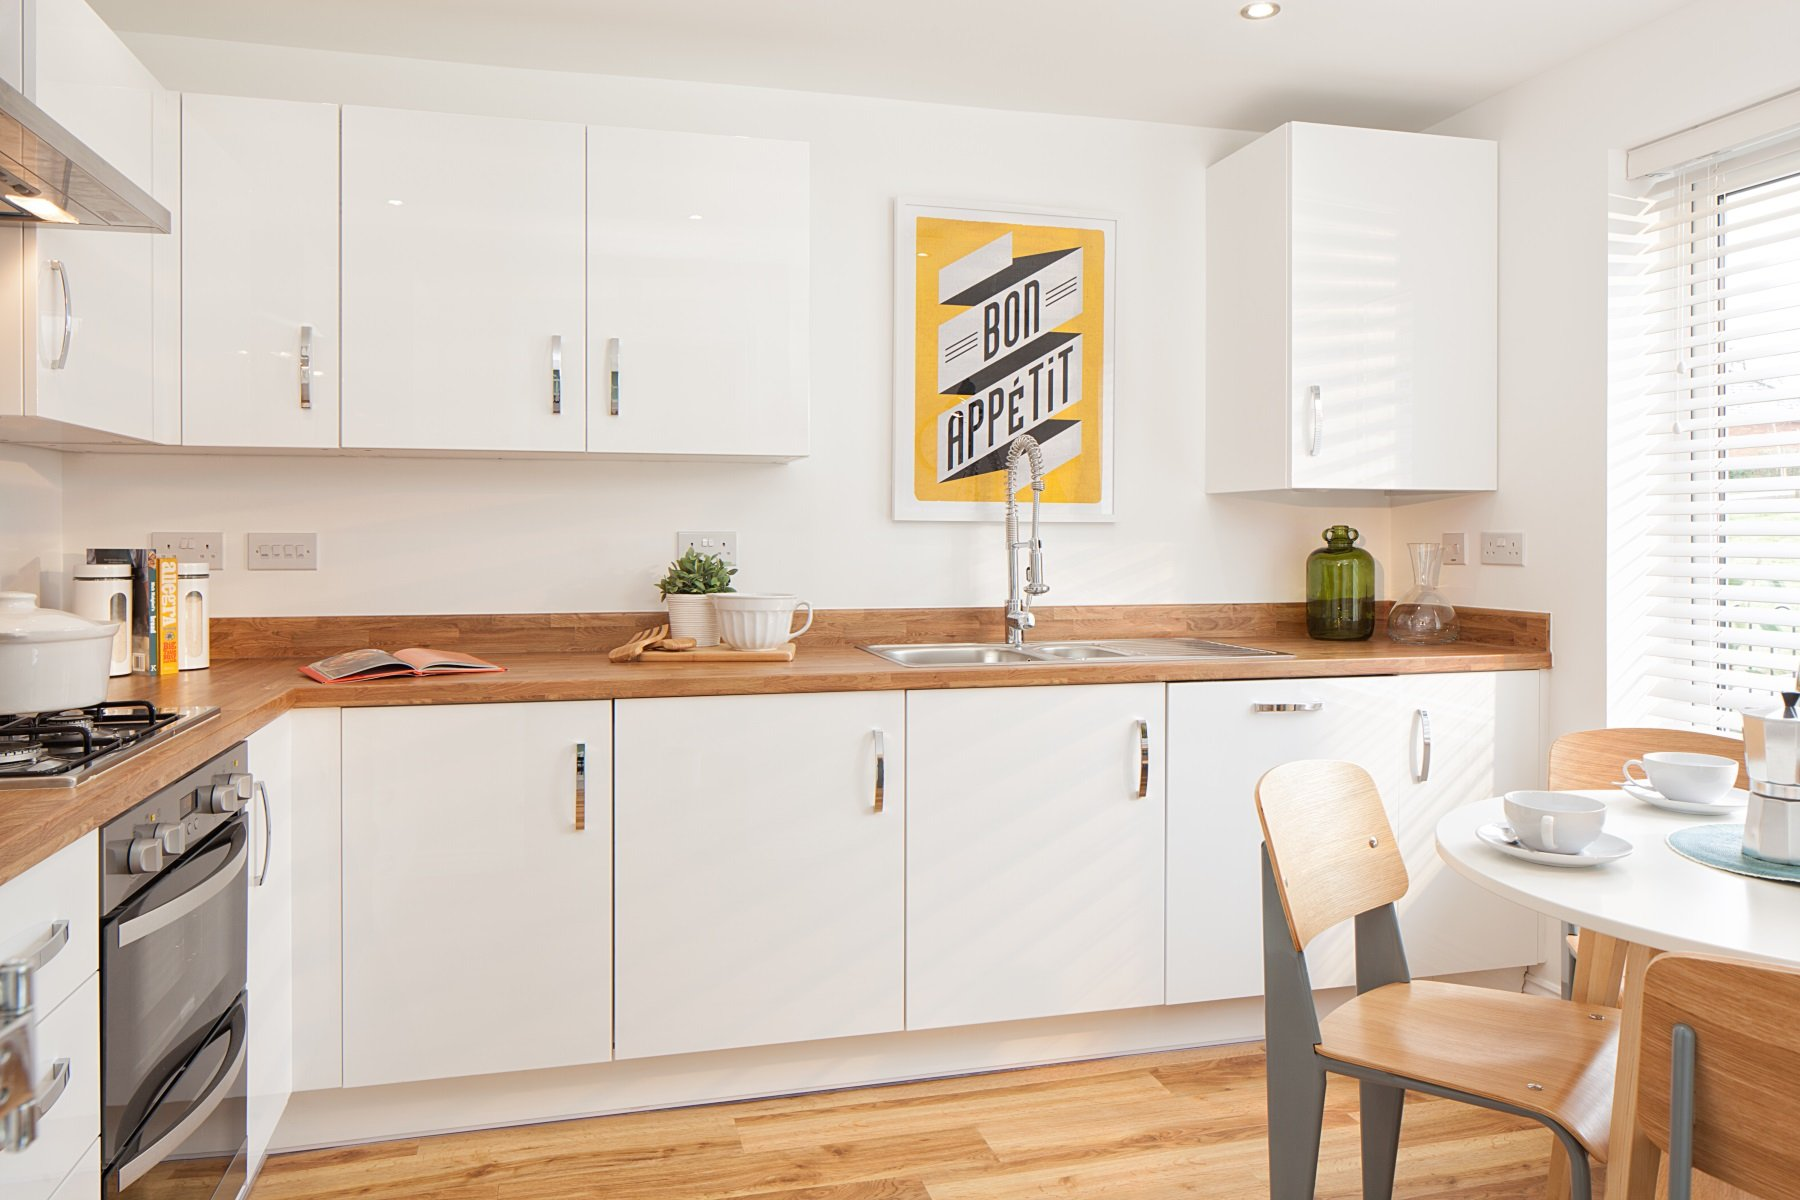 TW Exeter - Sherford - Flatford example kitchen 2